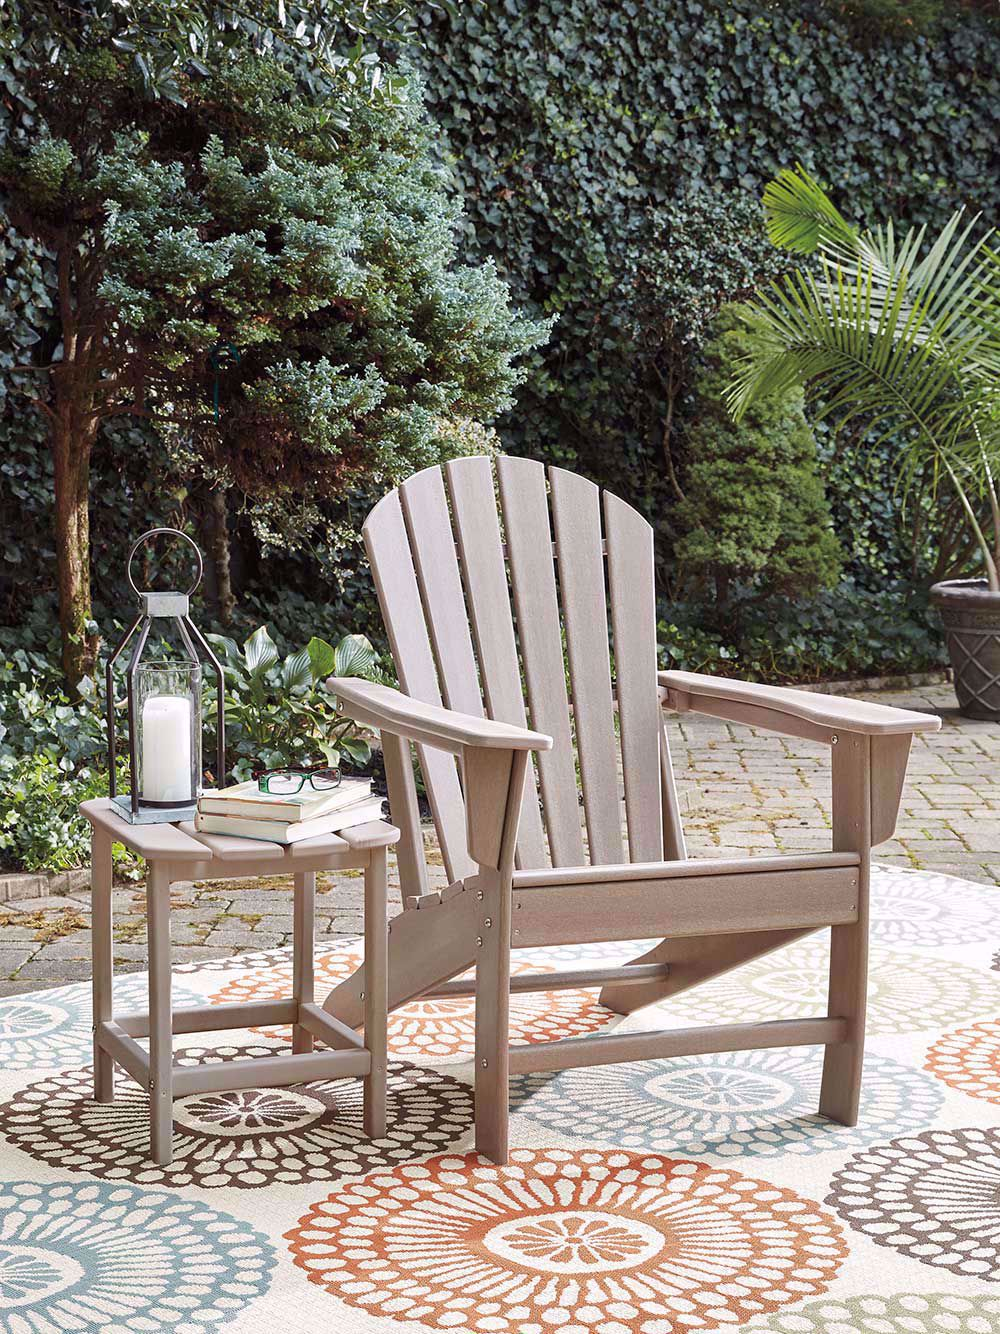 Picture of Sundown Treasure Driftwood Adirondack Chair with End Table